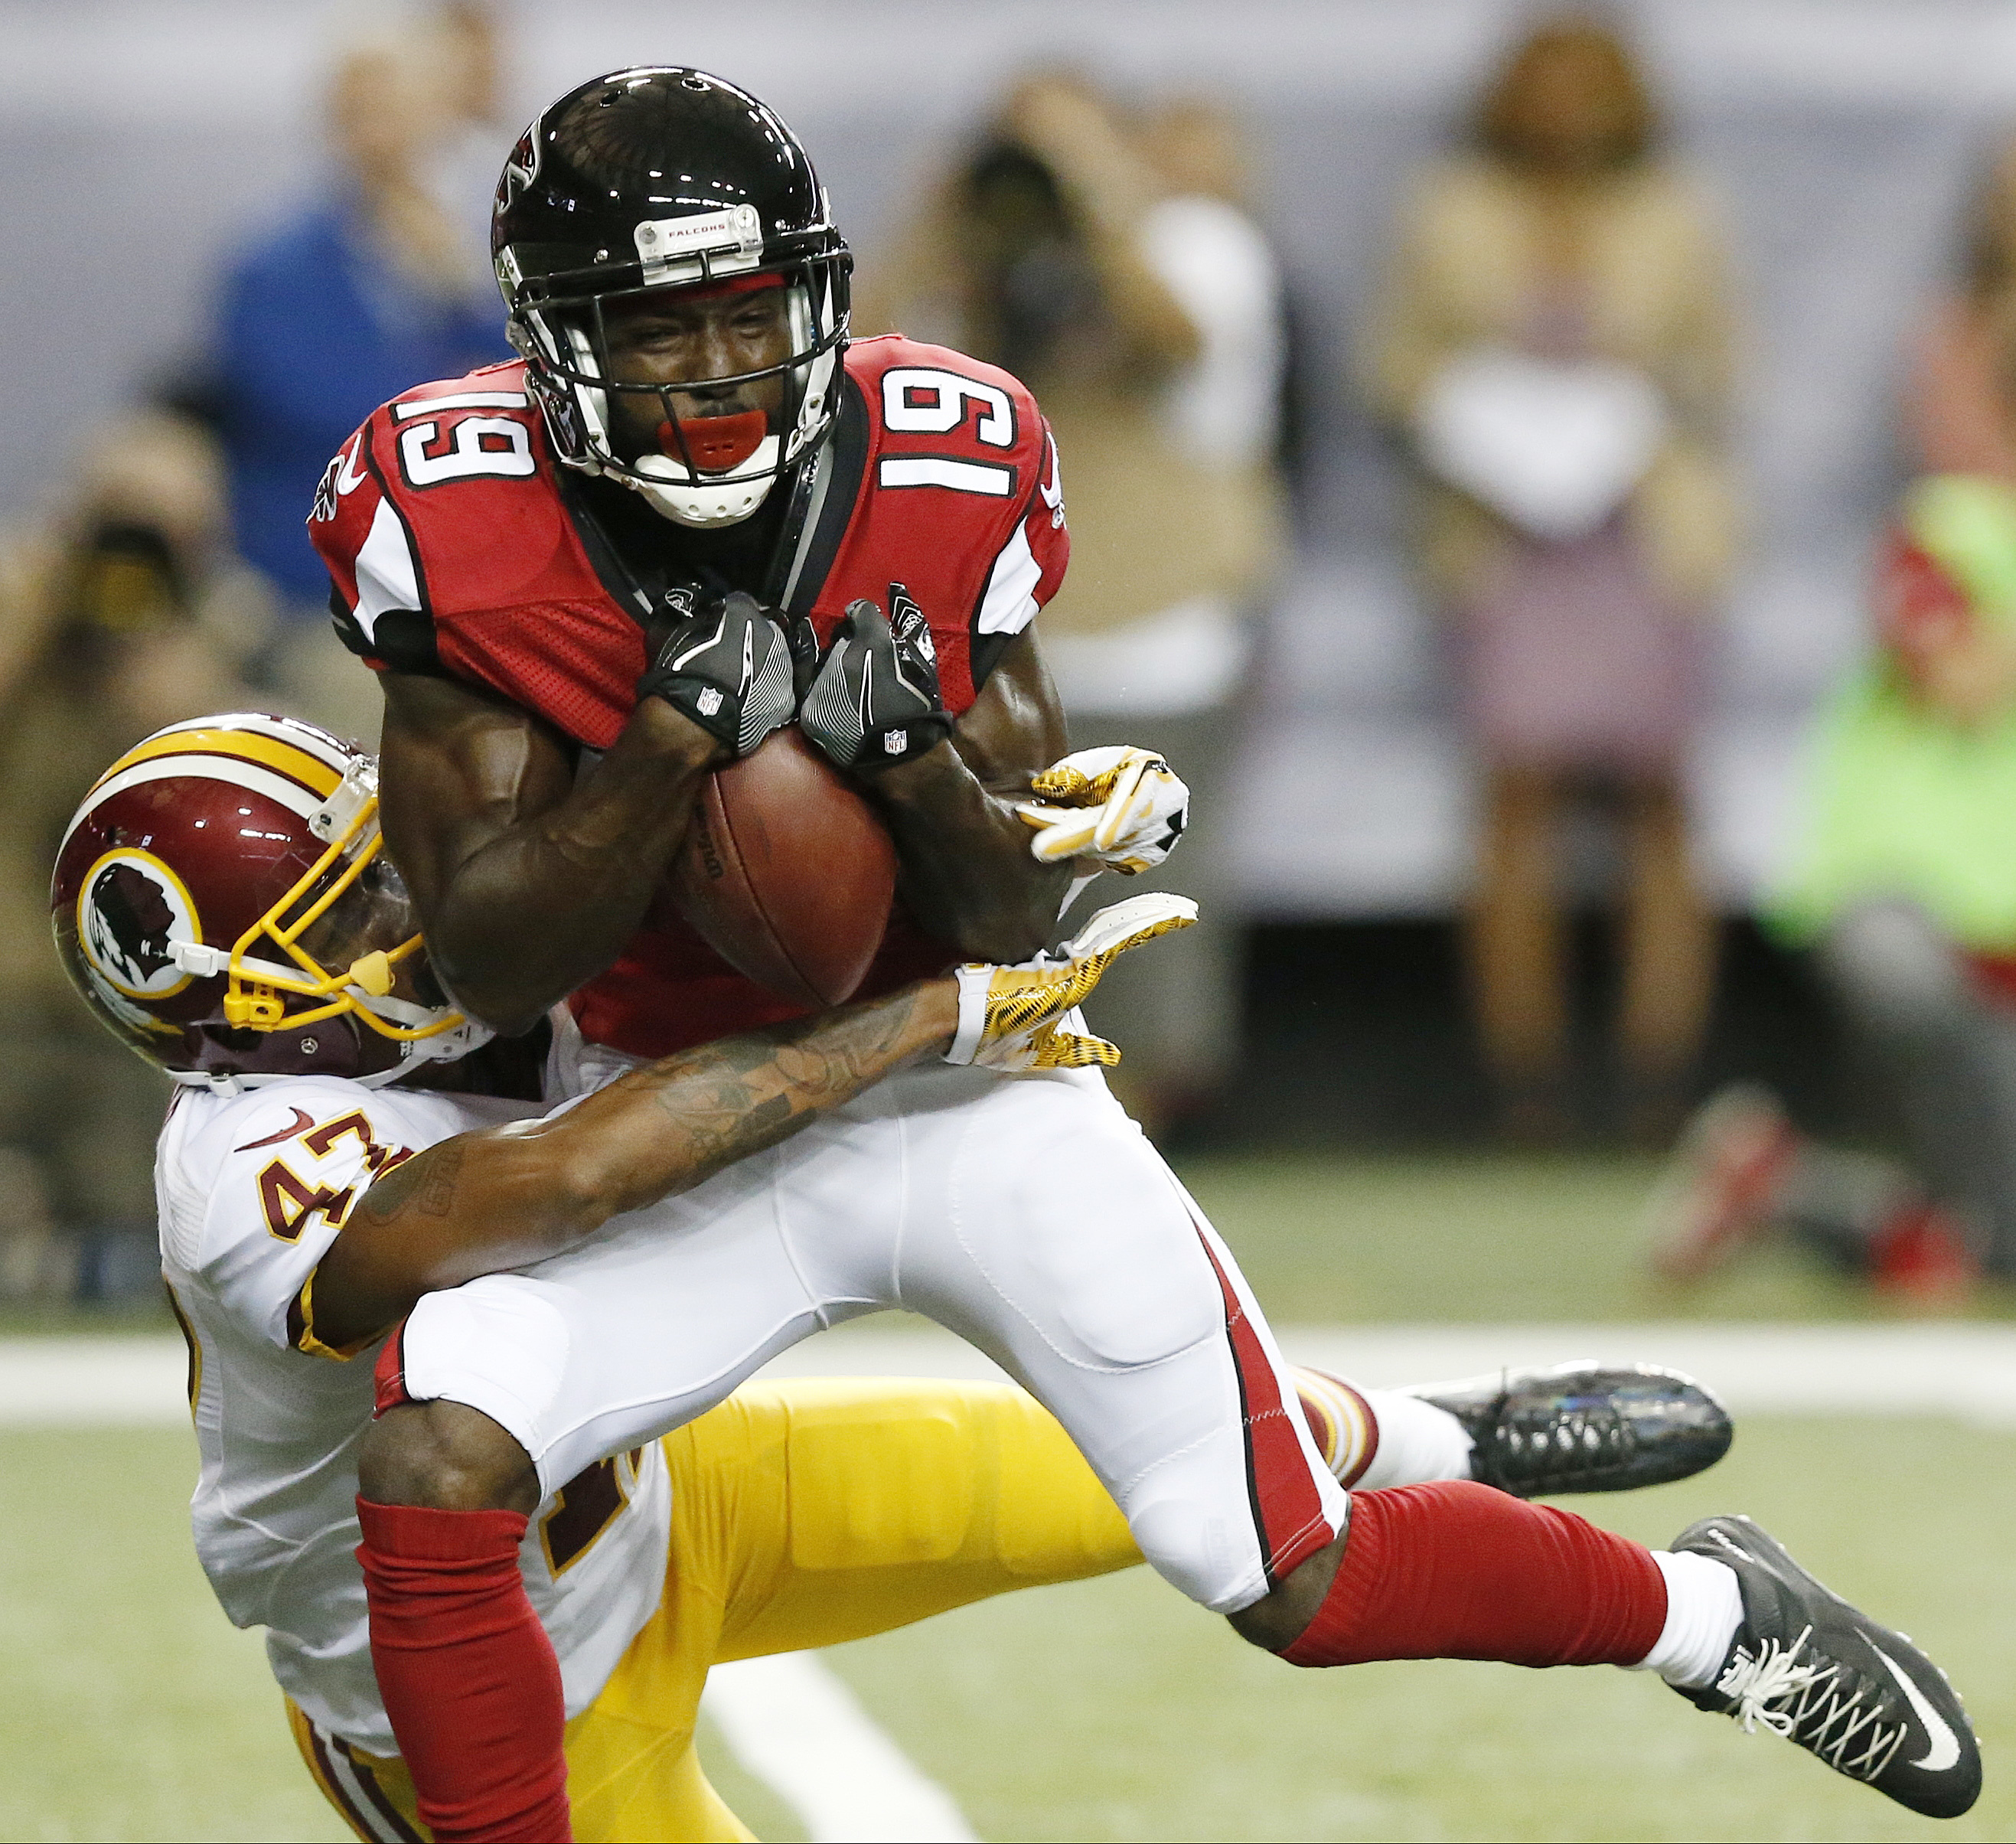 Atlanta Falcons wide receiver Aldrick Robinson (19) makes a catch against Washington Redskins cornerback Quinton Dunbar (47) during the first half of a preseason NFL football game, Thursday, Aug. 11, 2016, in Atlanta. (AP Photo/Brynn Anderson)